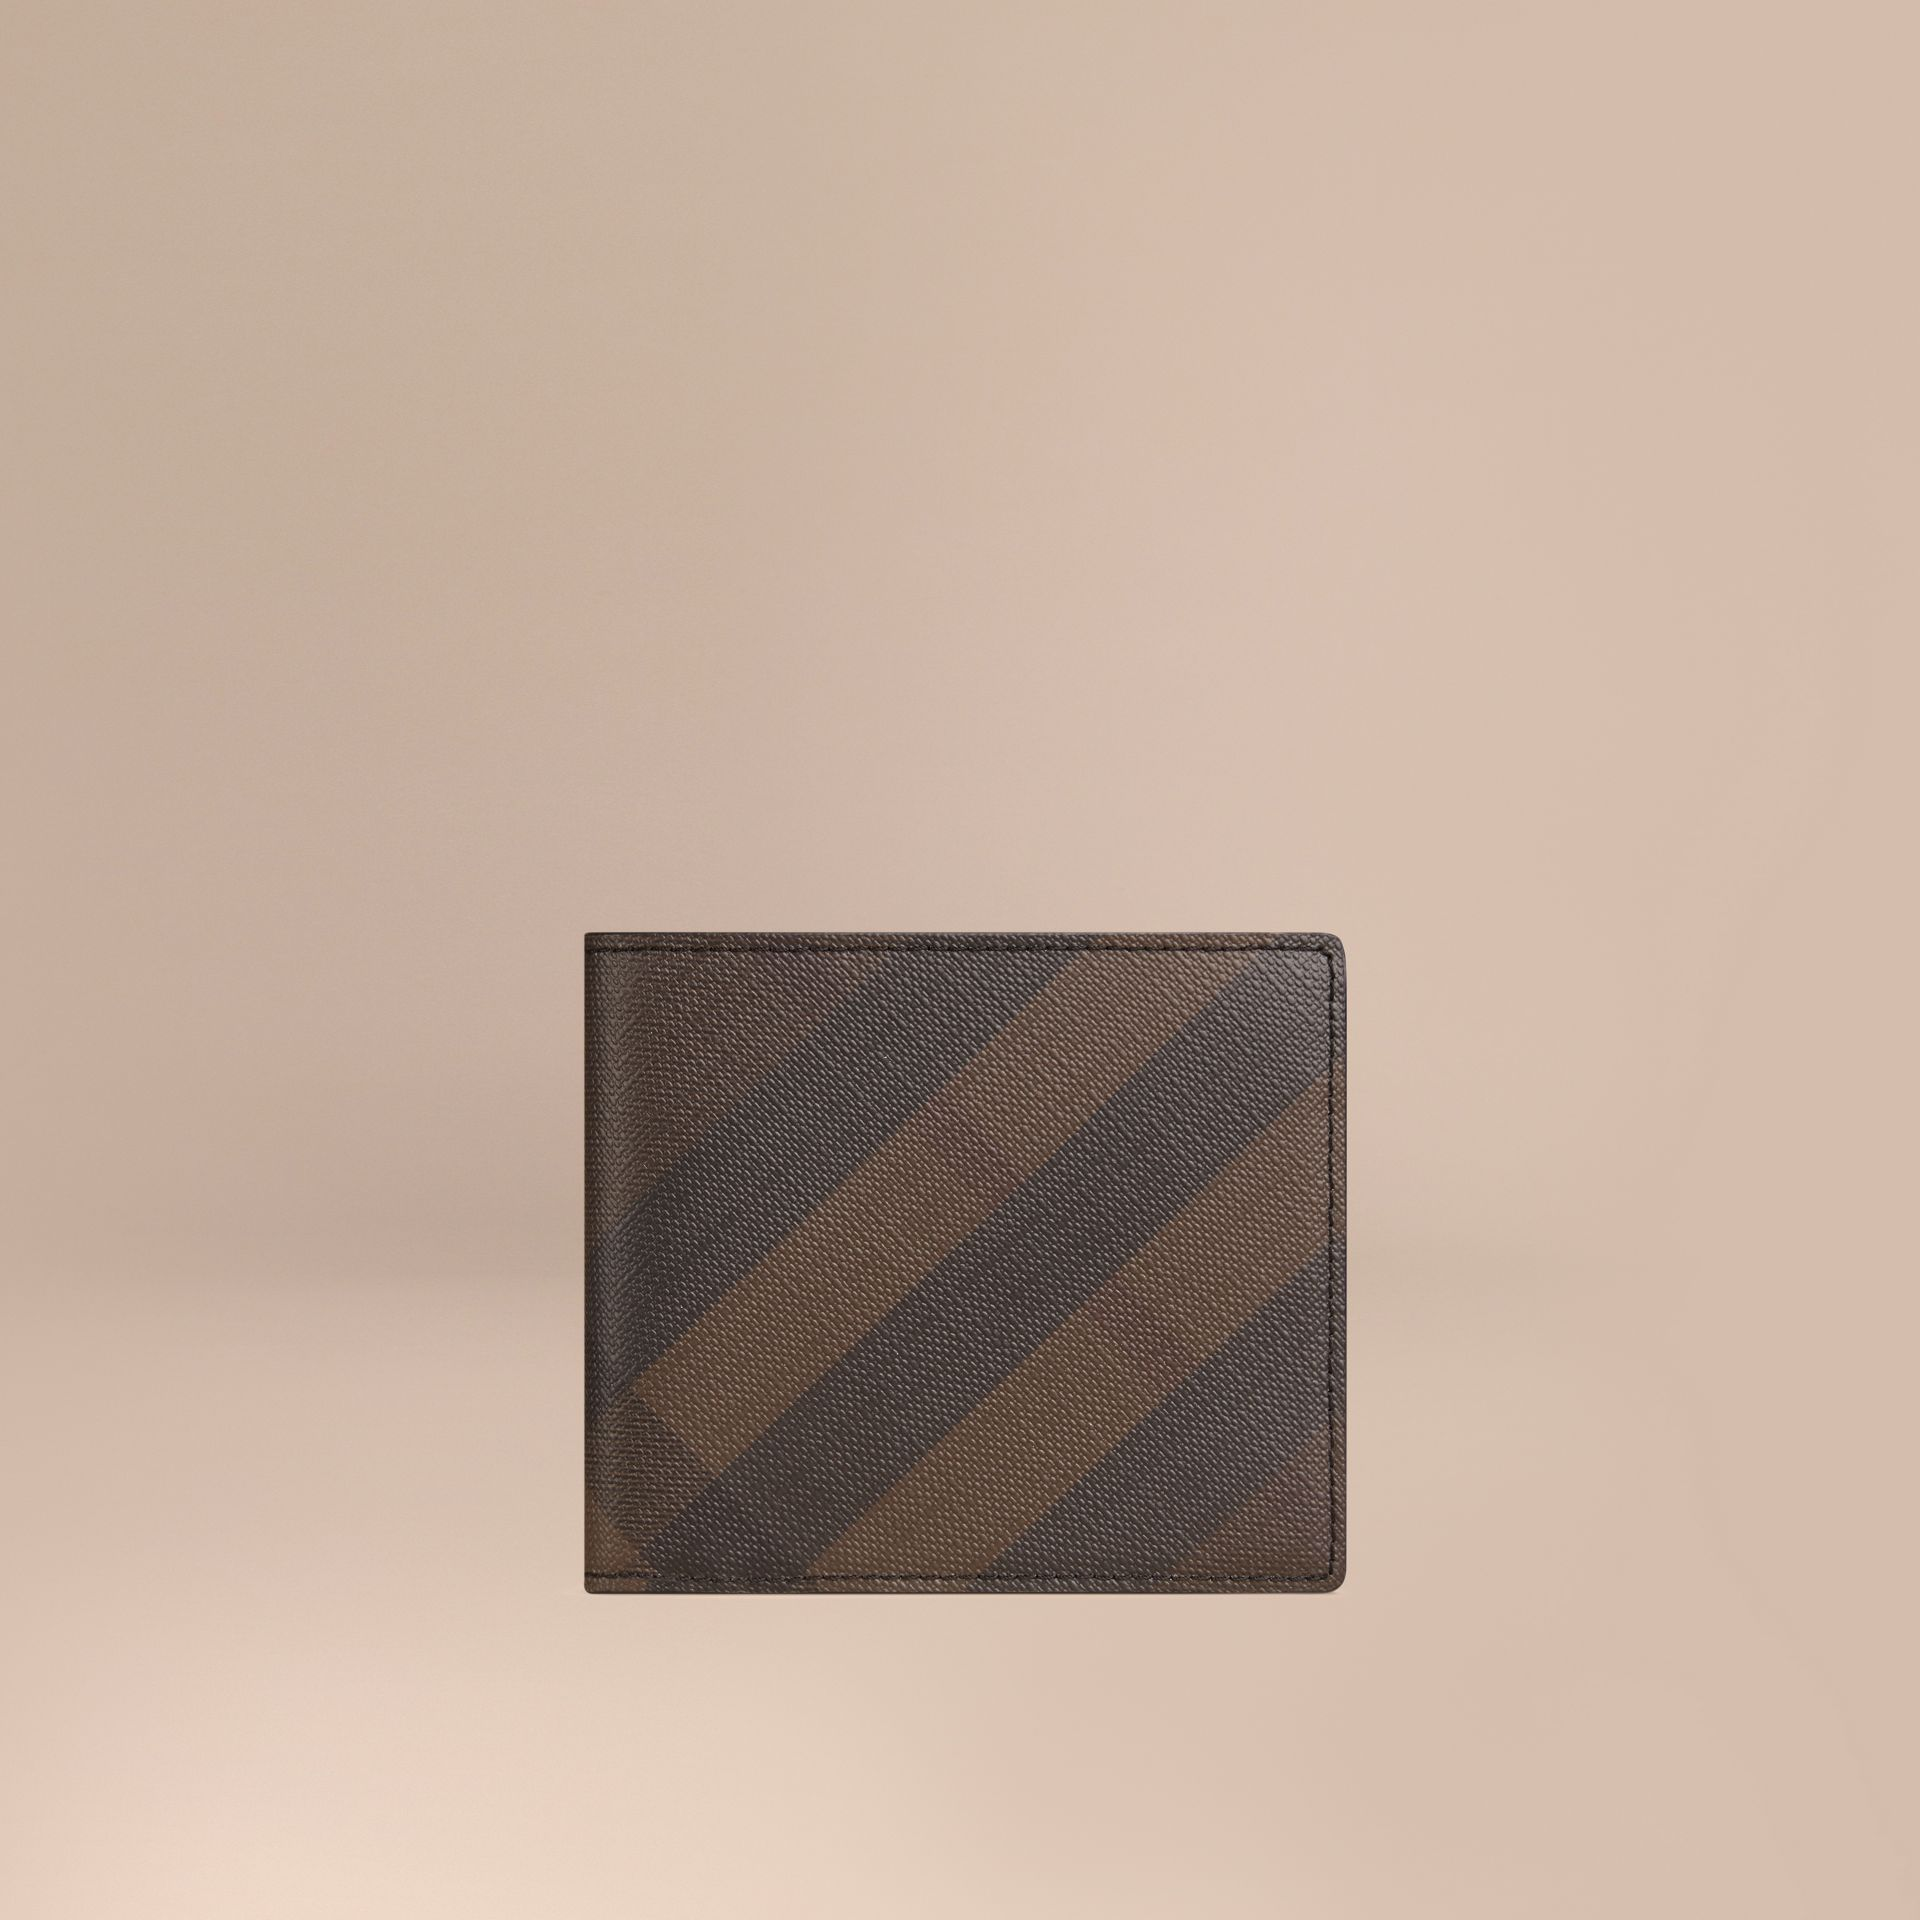 London Check ID Wallet in Chocolate/black - Men | Burberry - gallery image 1